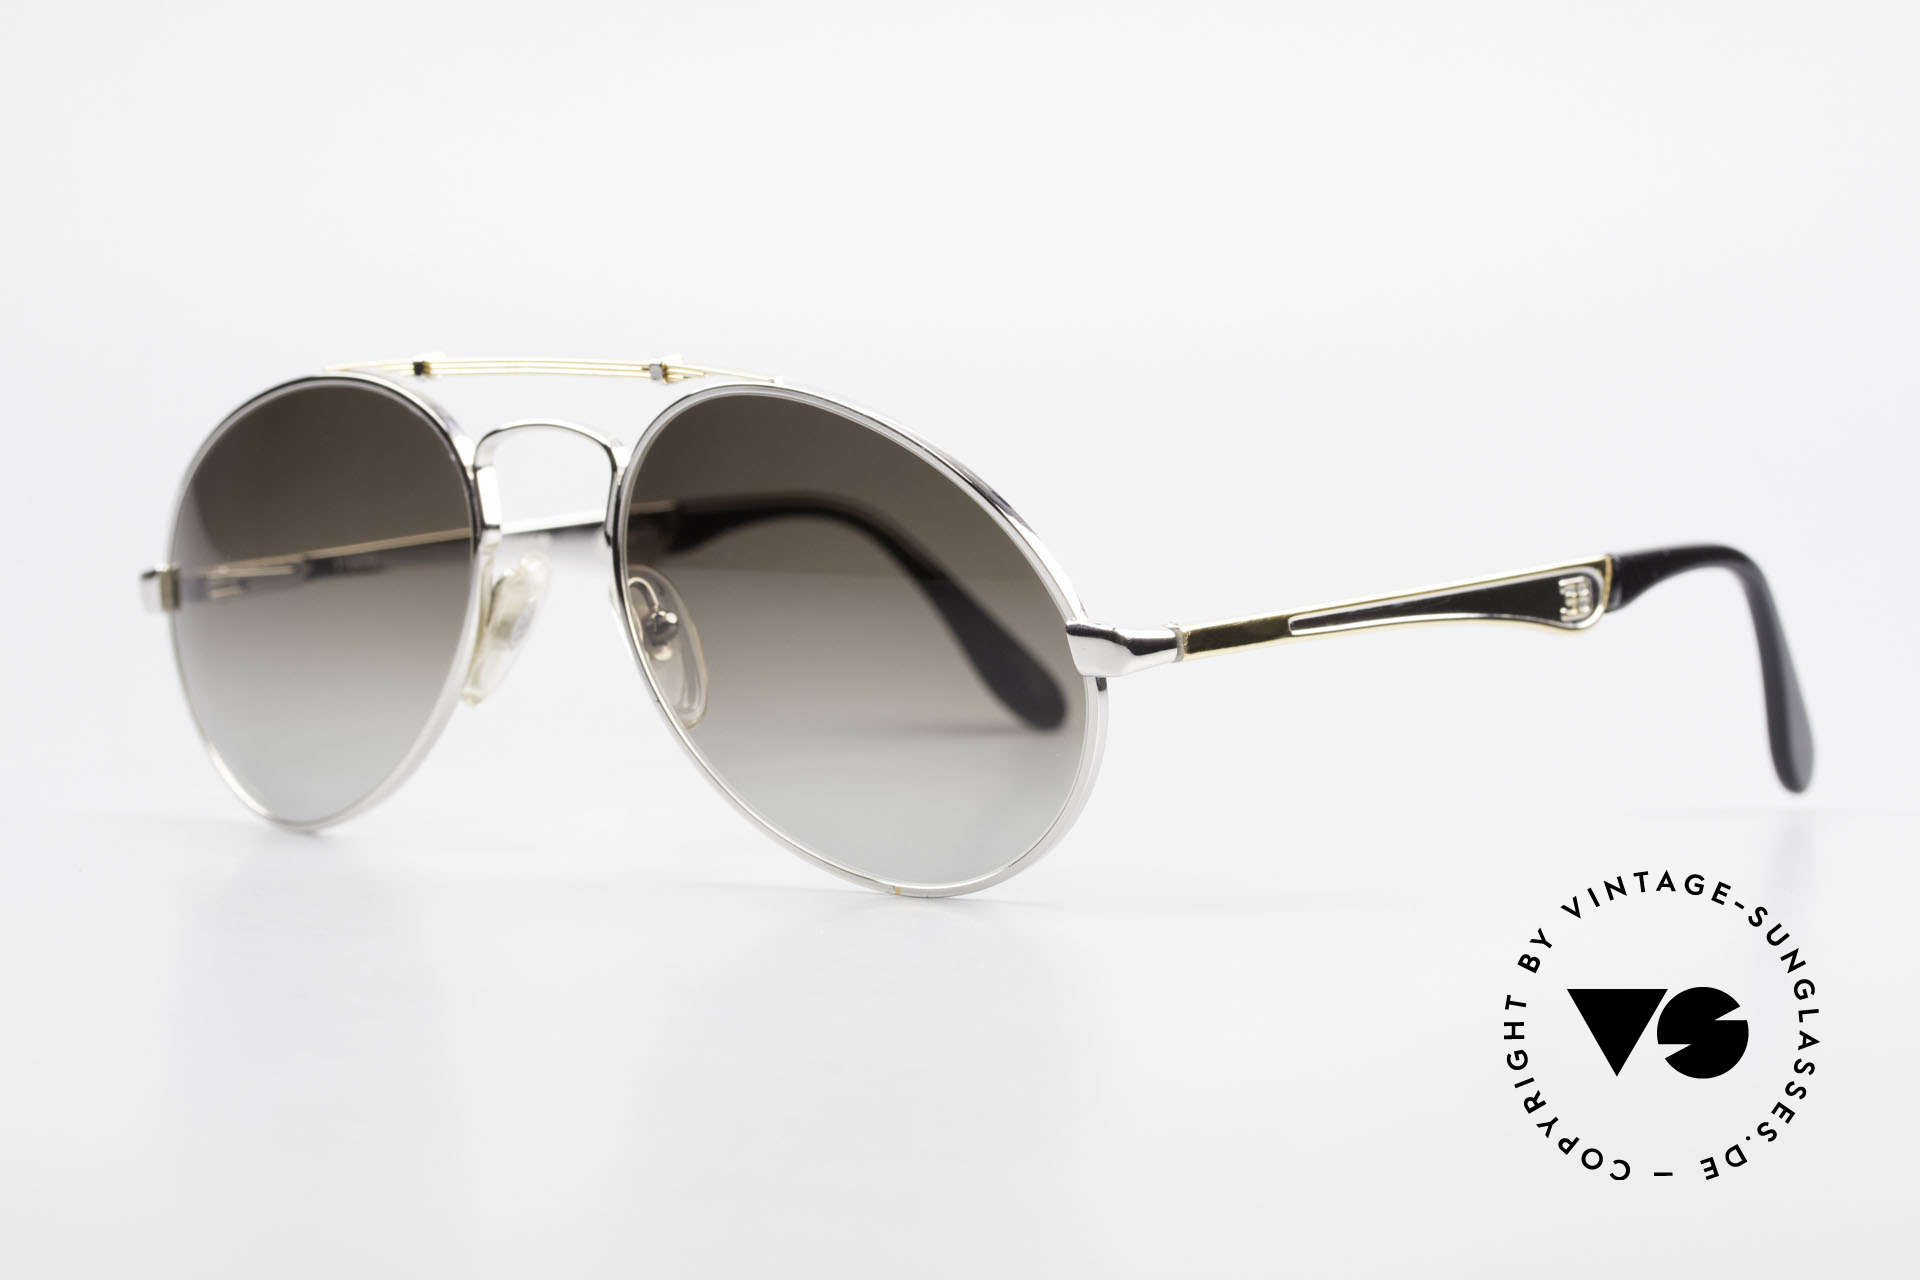 Bugatti 11909 80's Luxury Sunglasses Large, no tear drop, no aviator, but just Bugatti shape, Made for Men